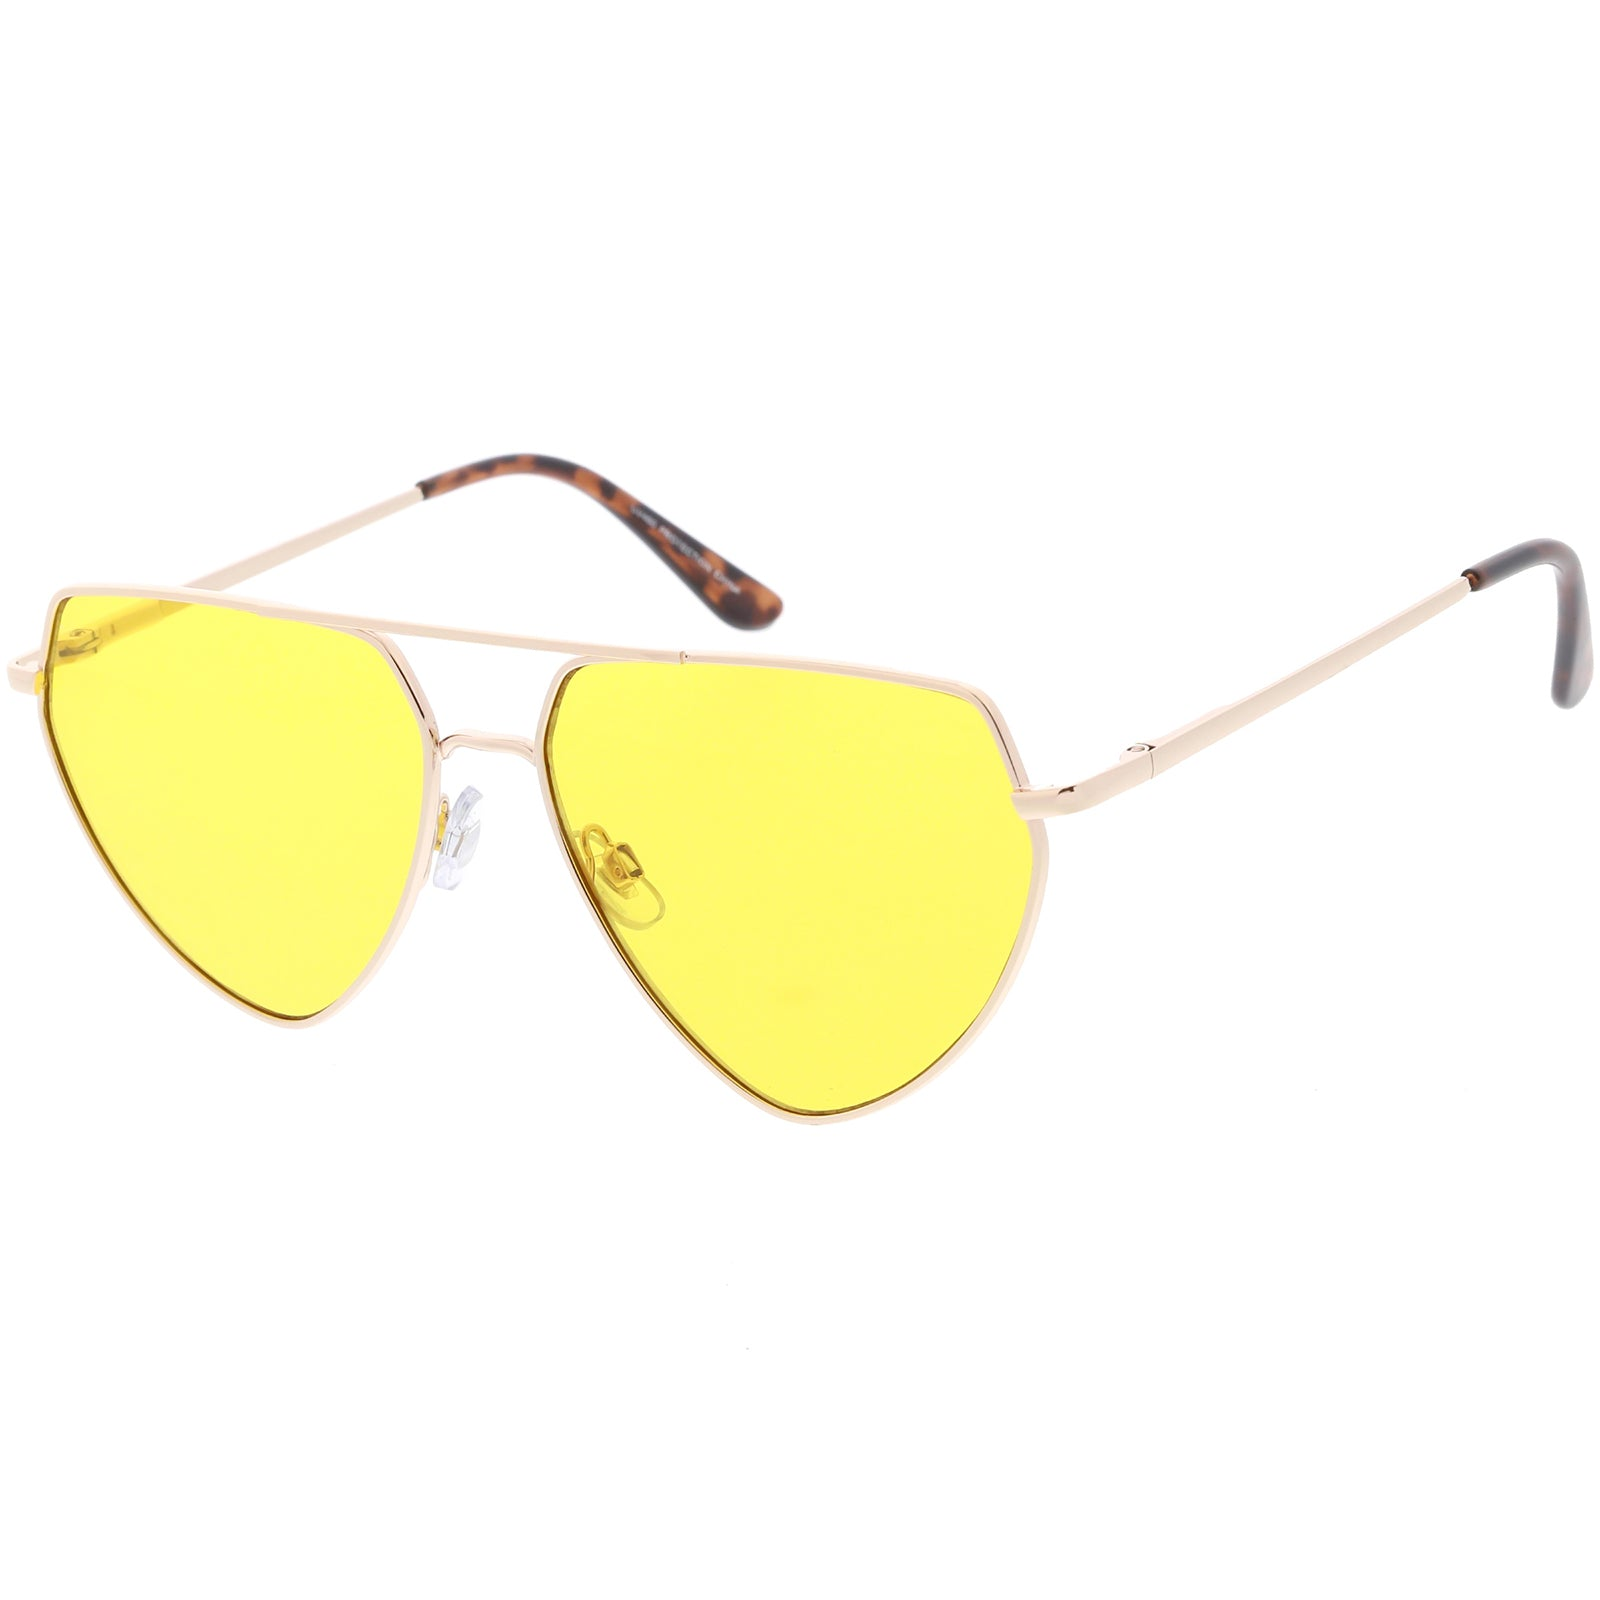 a8704634644a5 Oversize Metal Aviator Sunglasses Crossbar Slim Arms Color Tinted ...